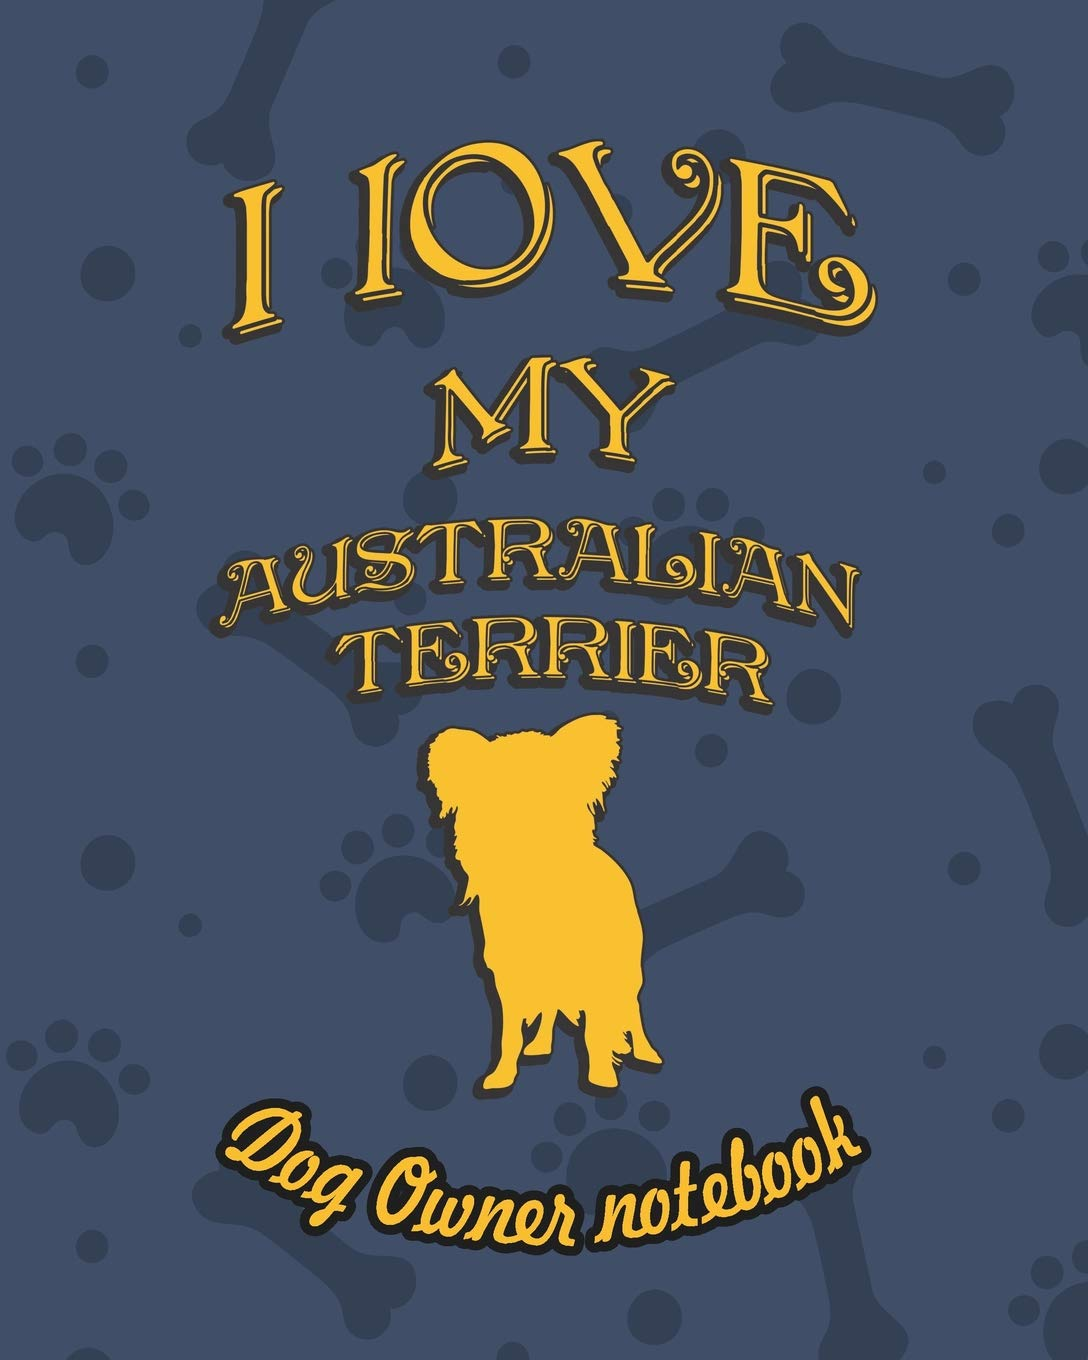 I love my Australian Terrier – Dog owner notebook: Doggy style designed pages for dog owner's to note Training log and…